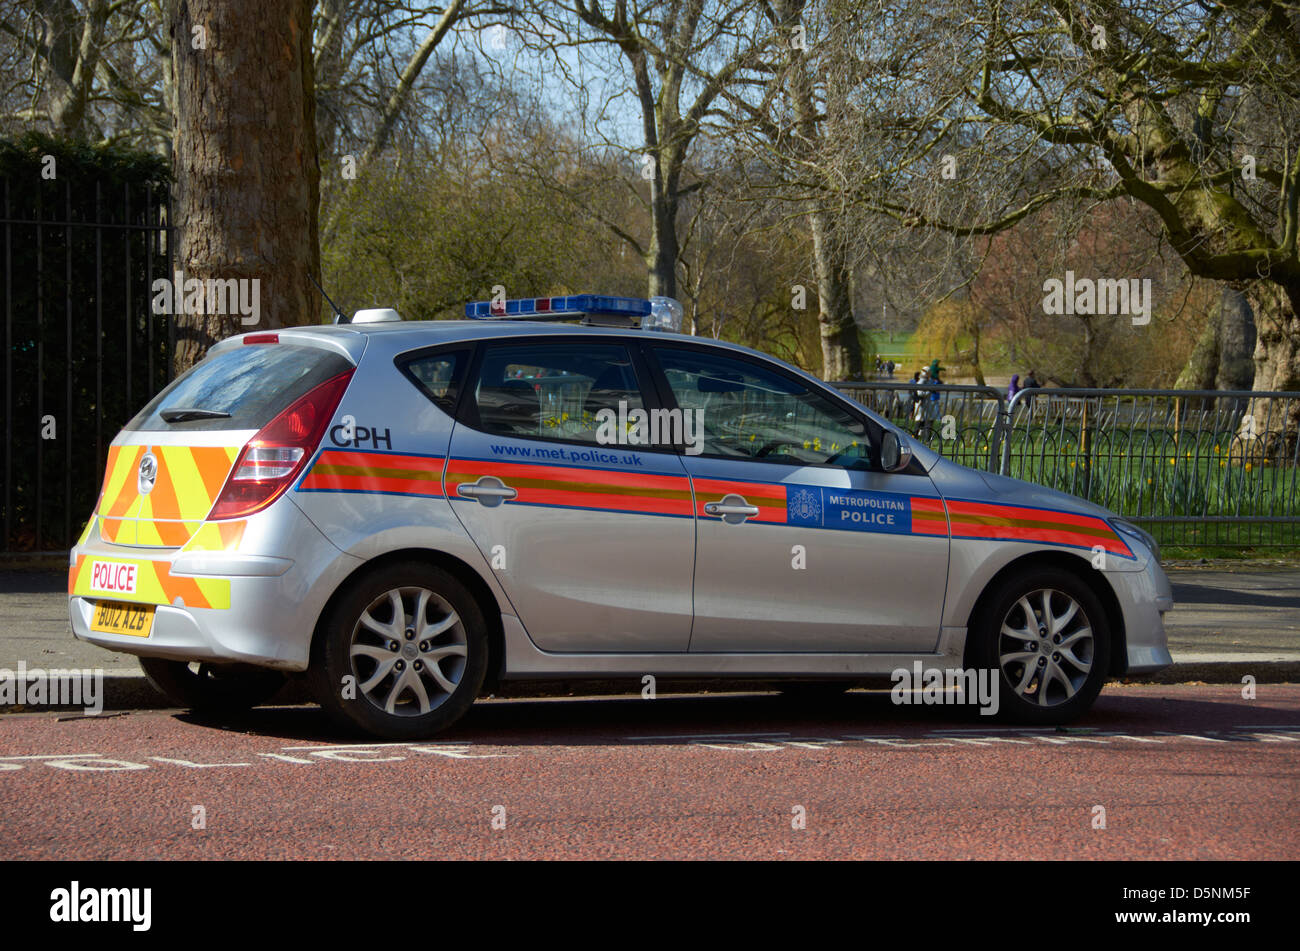 Silver police car parked on Horse Guards Road, London (next to St James Park). - Stock Image